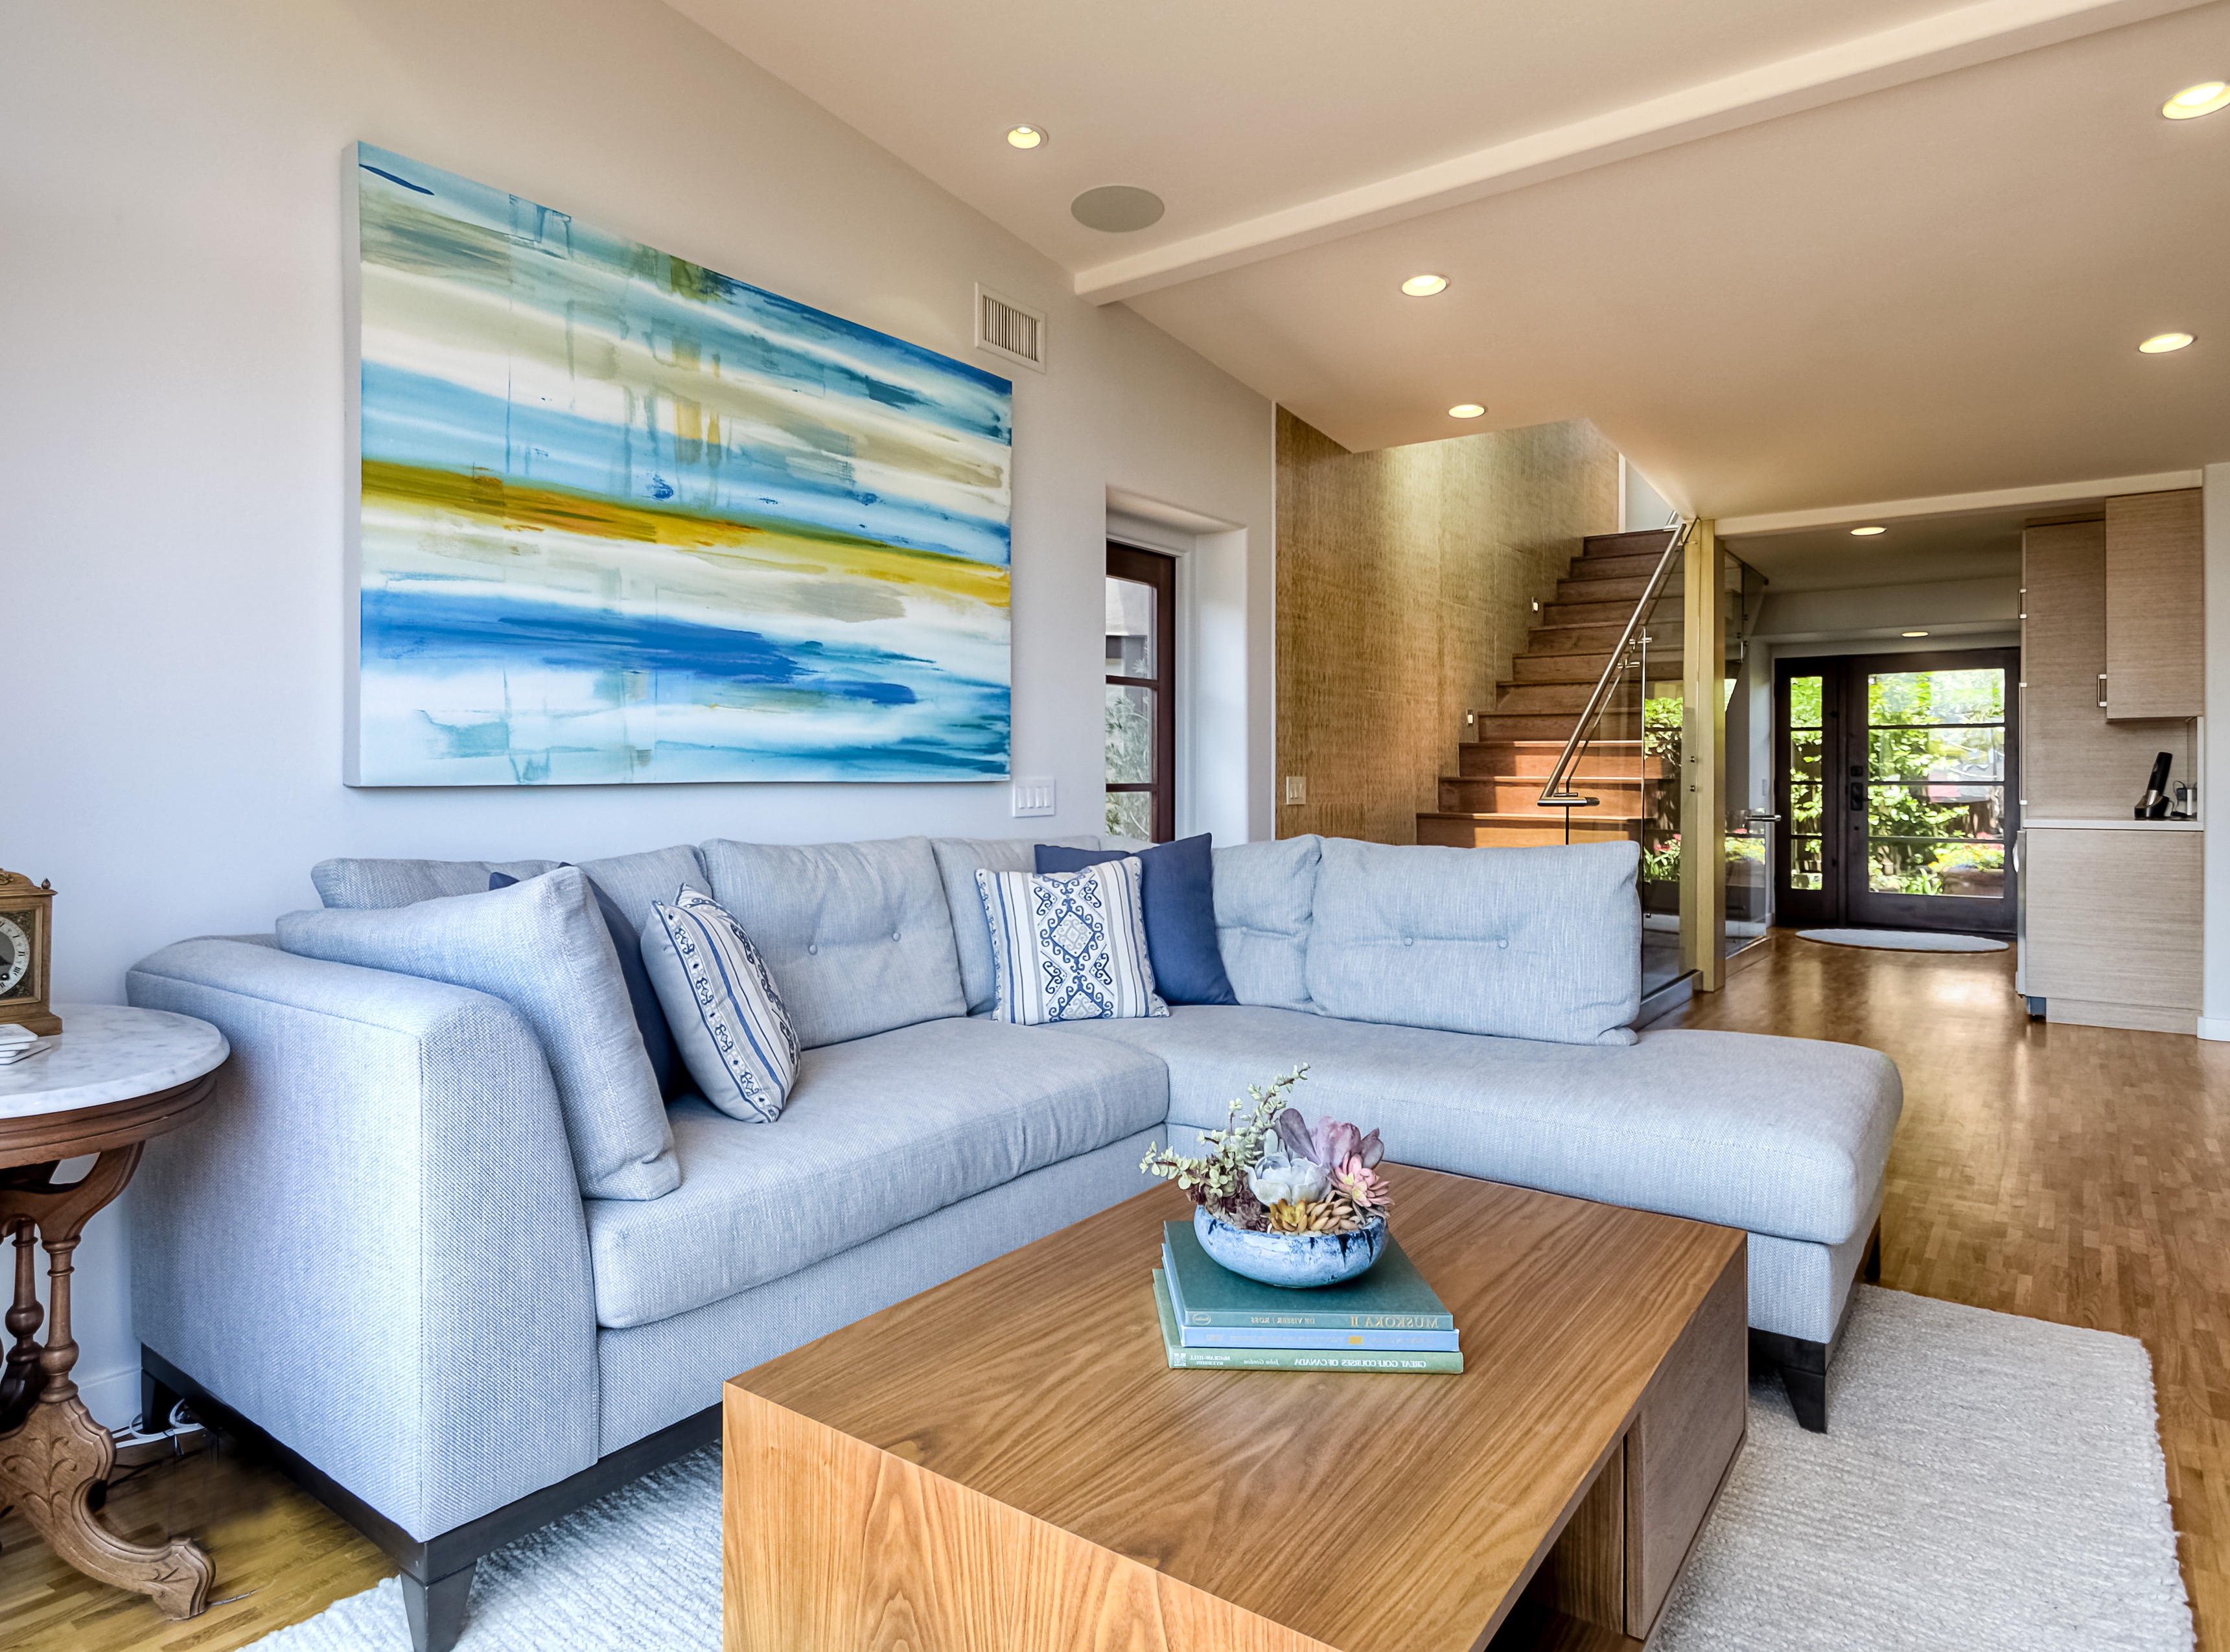 Ice Blue Sectional Sofa And Ocean Inspired Modern Art (Image 16 of 25)